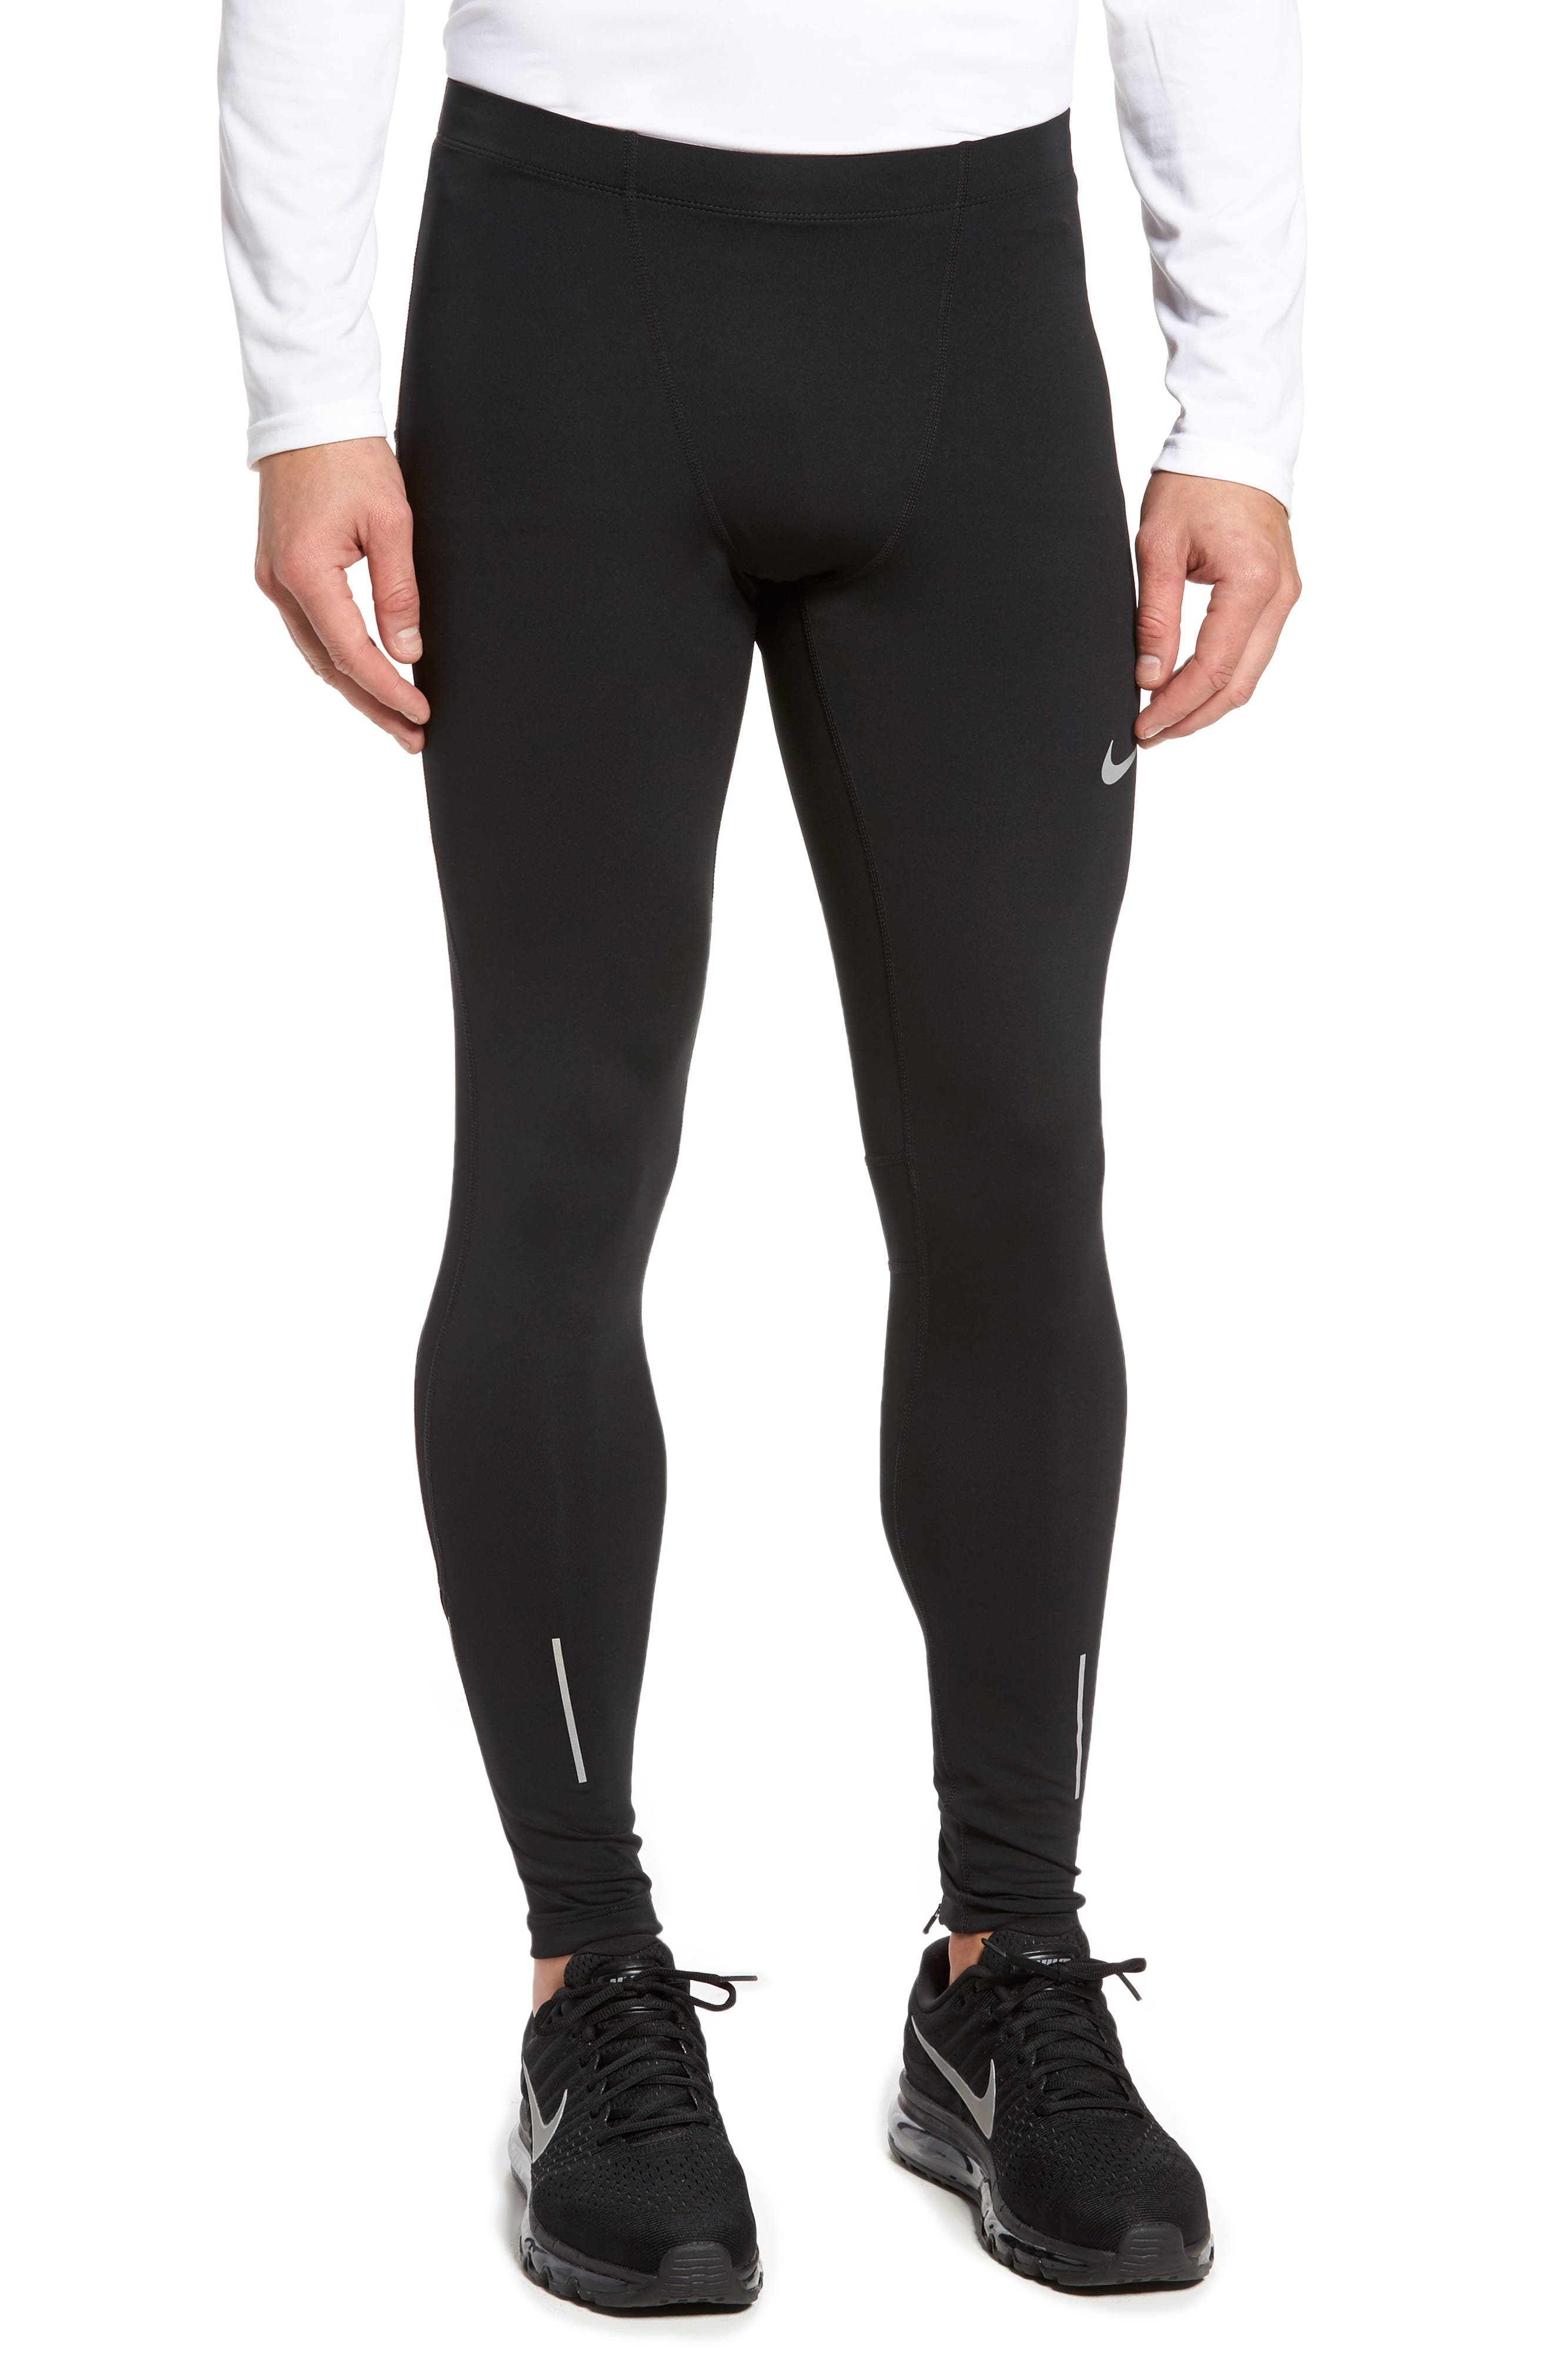 Therma Dry Running Tights,                         Main,                         color, Black